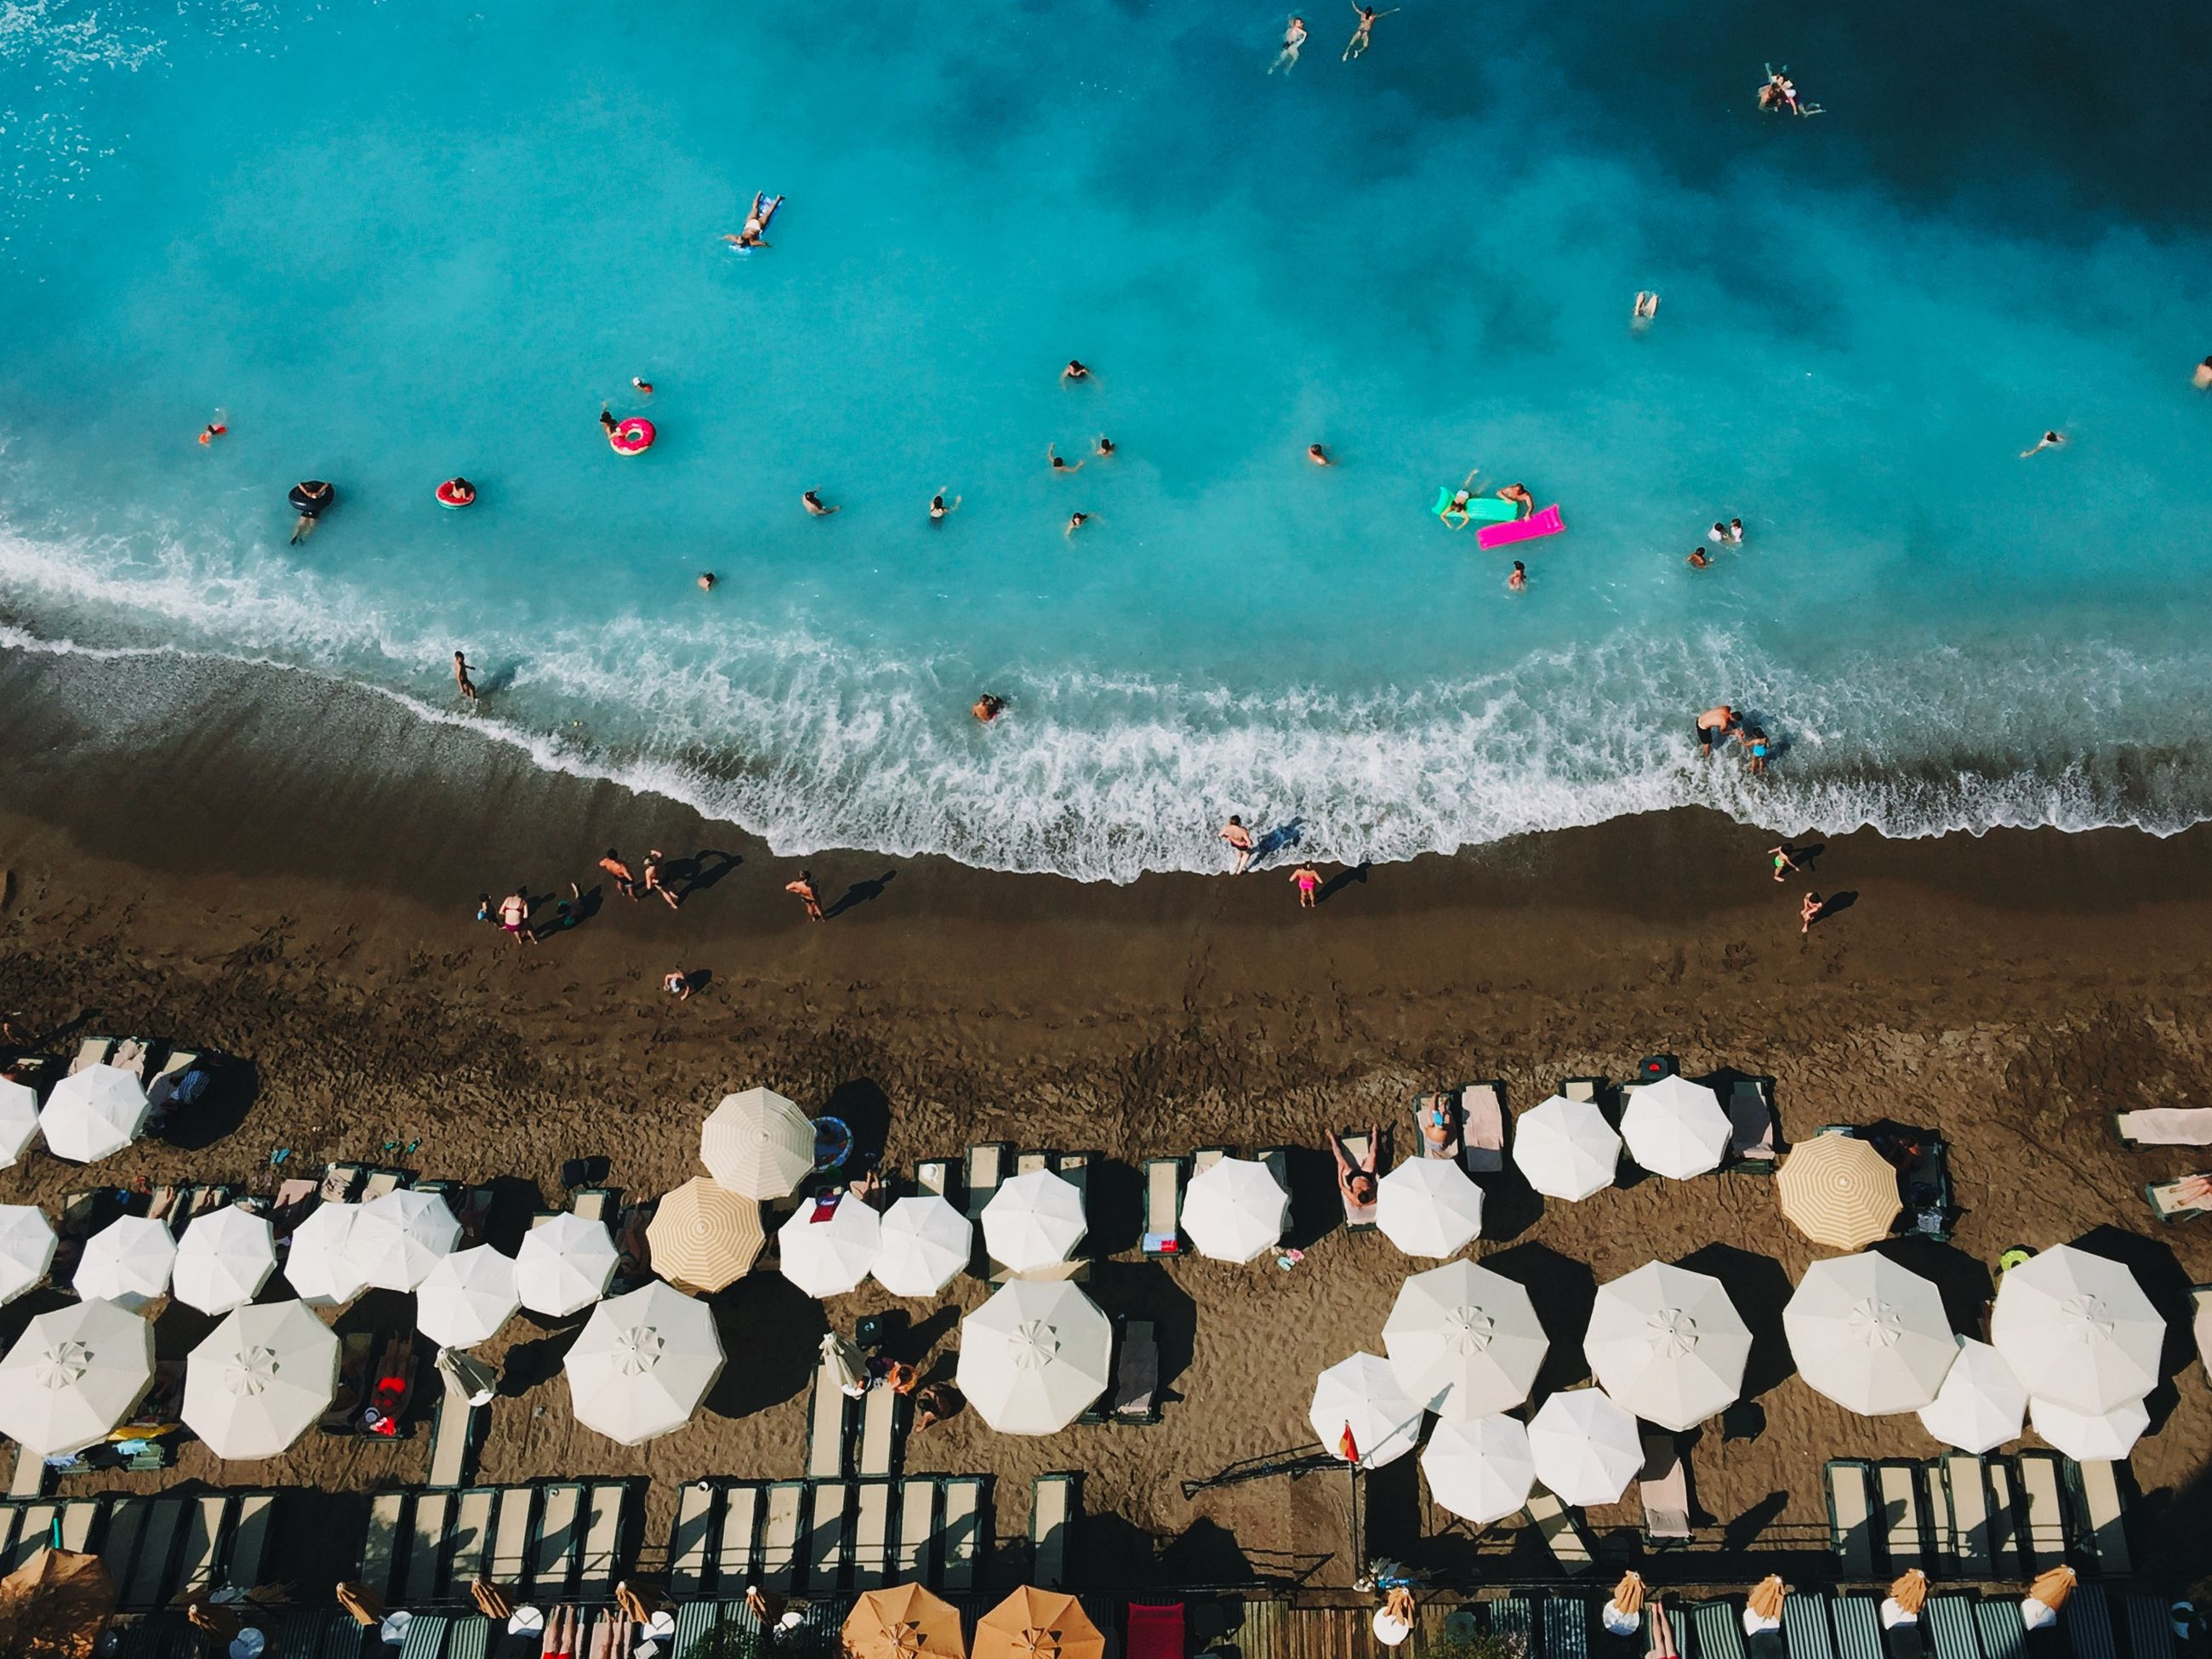 High angle view of people and umbrellas at beach on sunny day